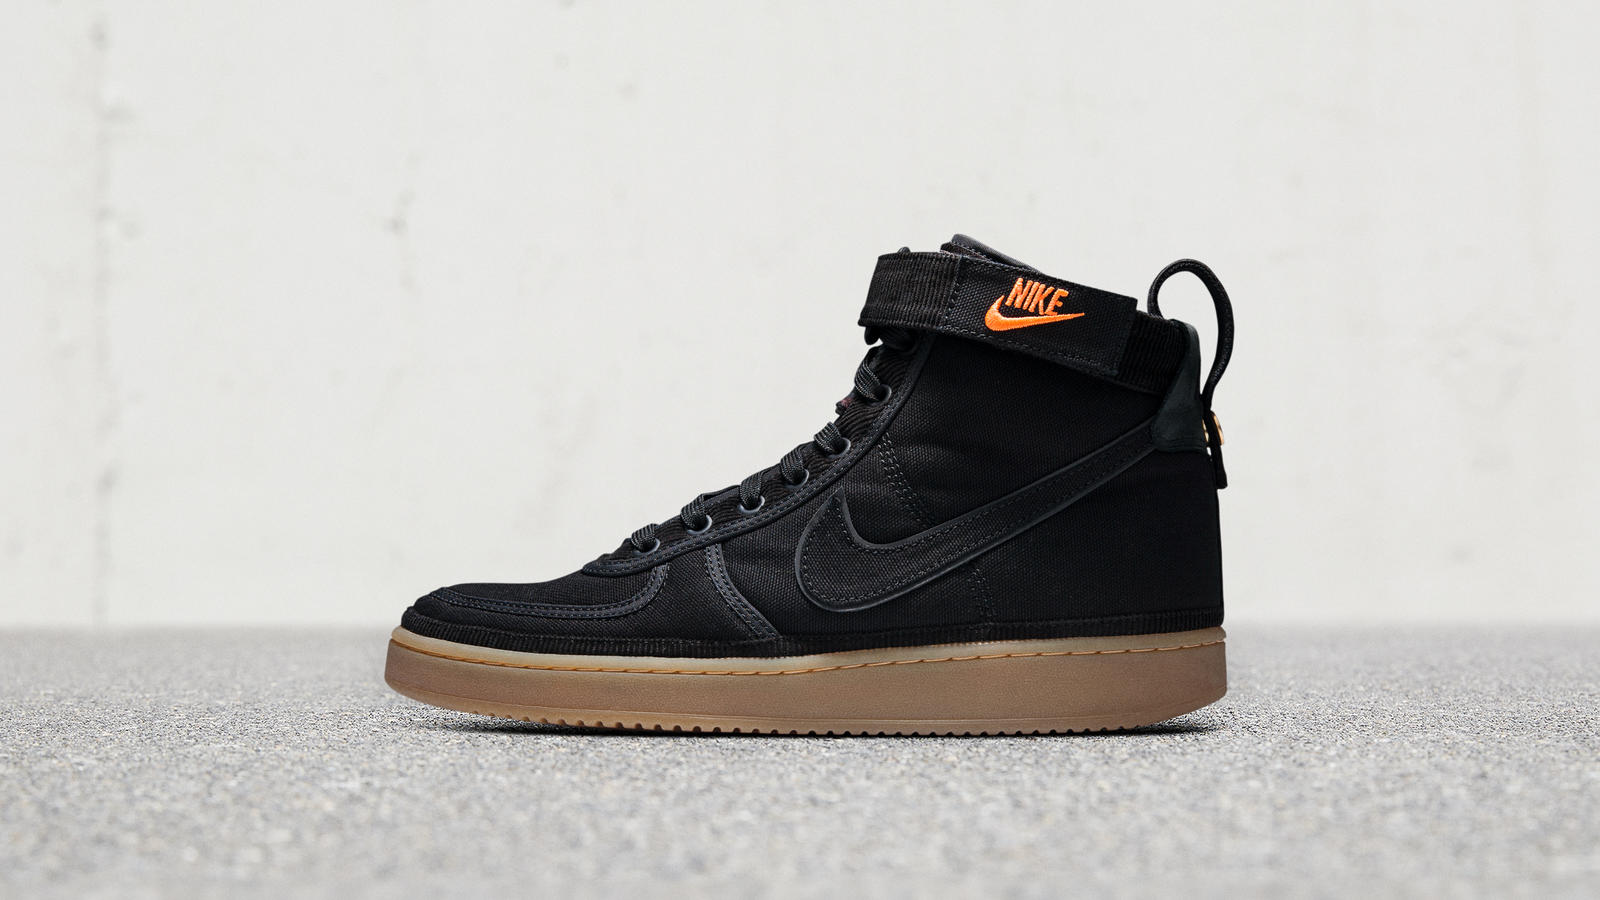 huge selection of b5b3a 80212 Nike x Carhartt Air Force 1 Low, Vandal Supreme High, Air Force 1 ...